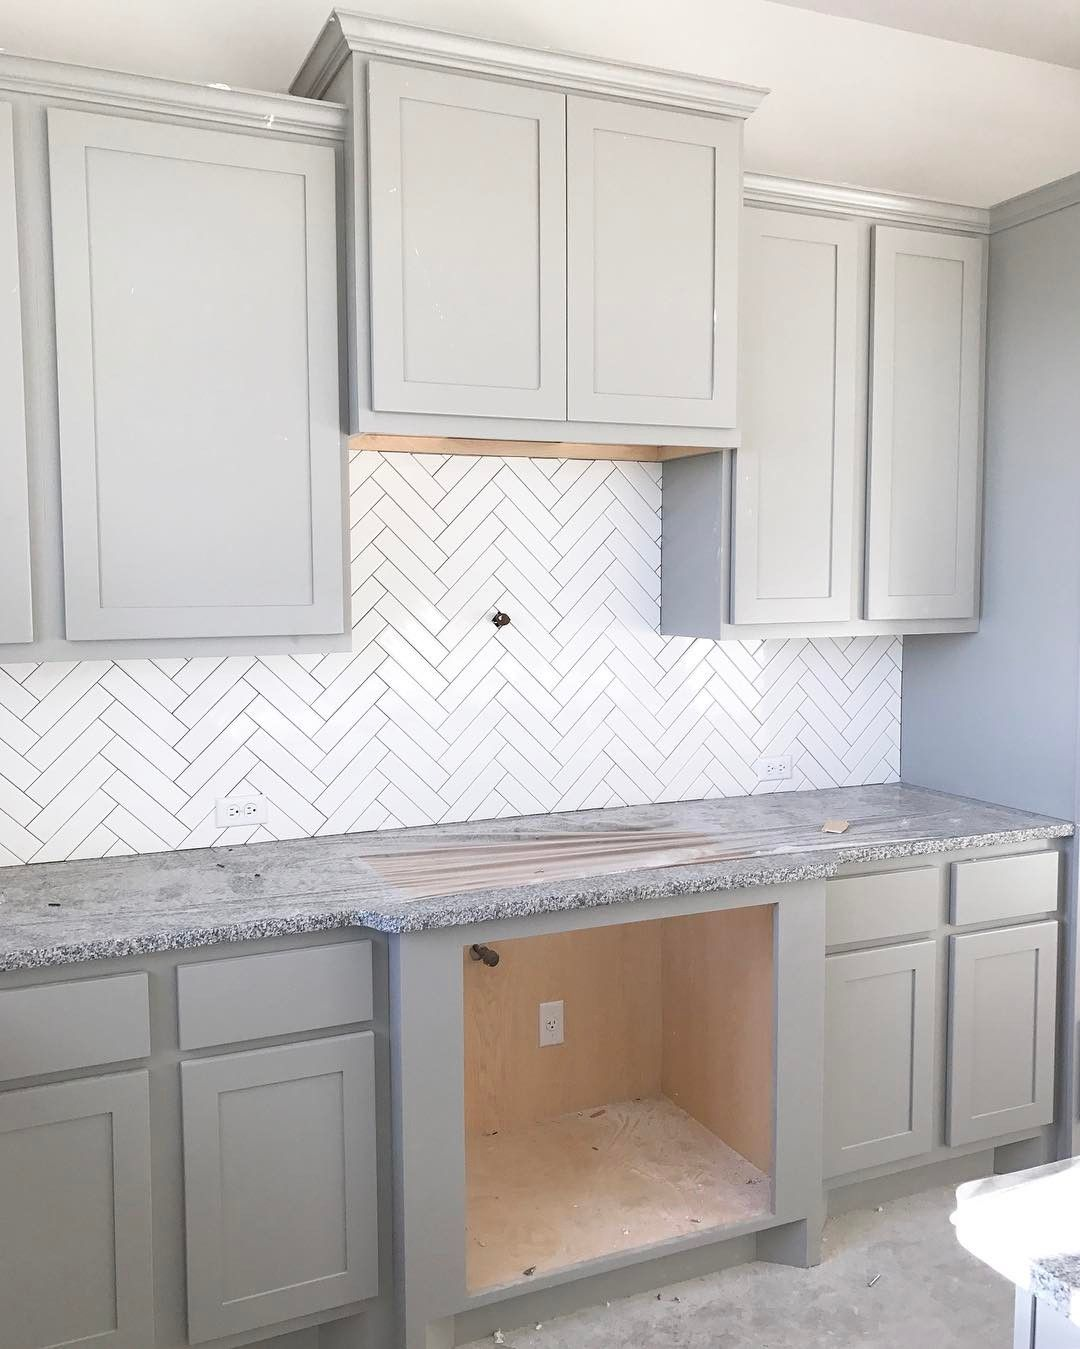 Holly Brad Ourfauxfarmhouse On Instagram Progress Pic Backsplash Is In No Grout Yet Mapei Warm Gray Coming But We Are Loving The 2x8 Tiles And